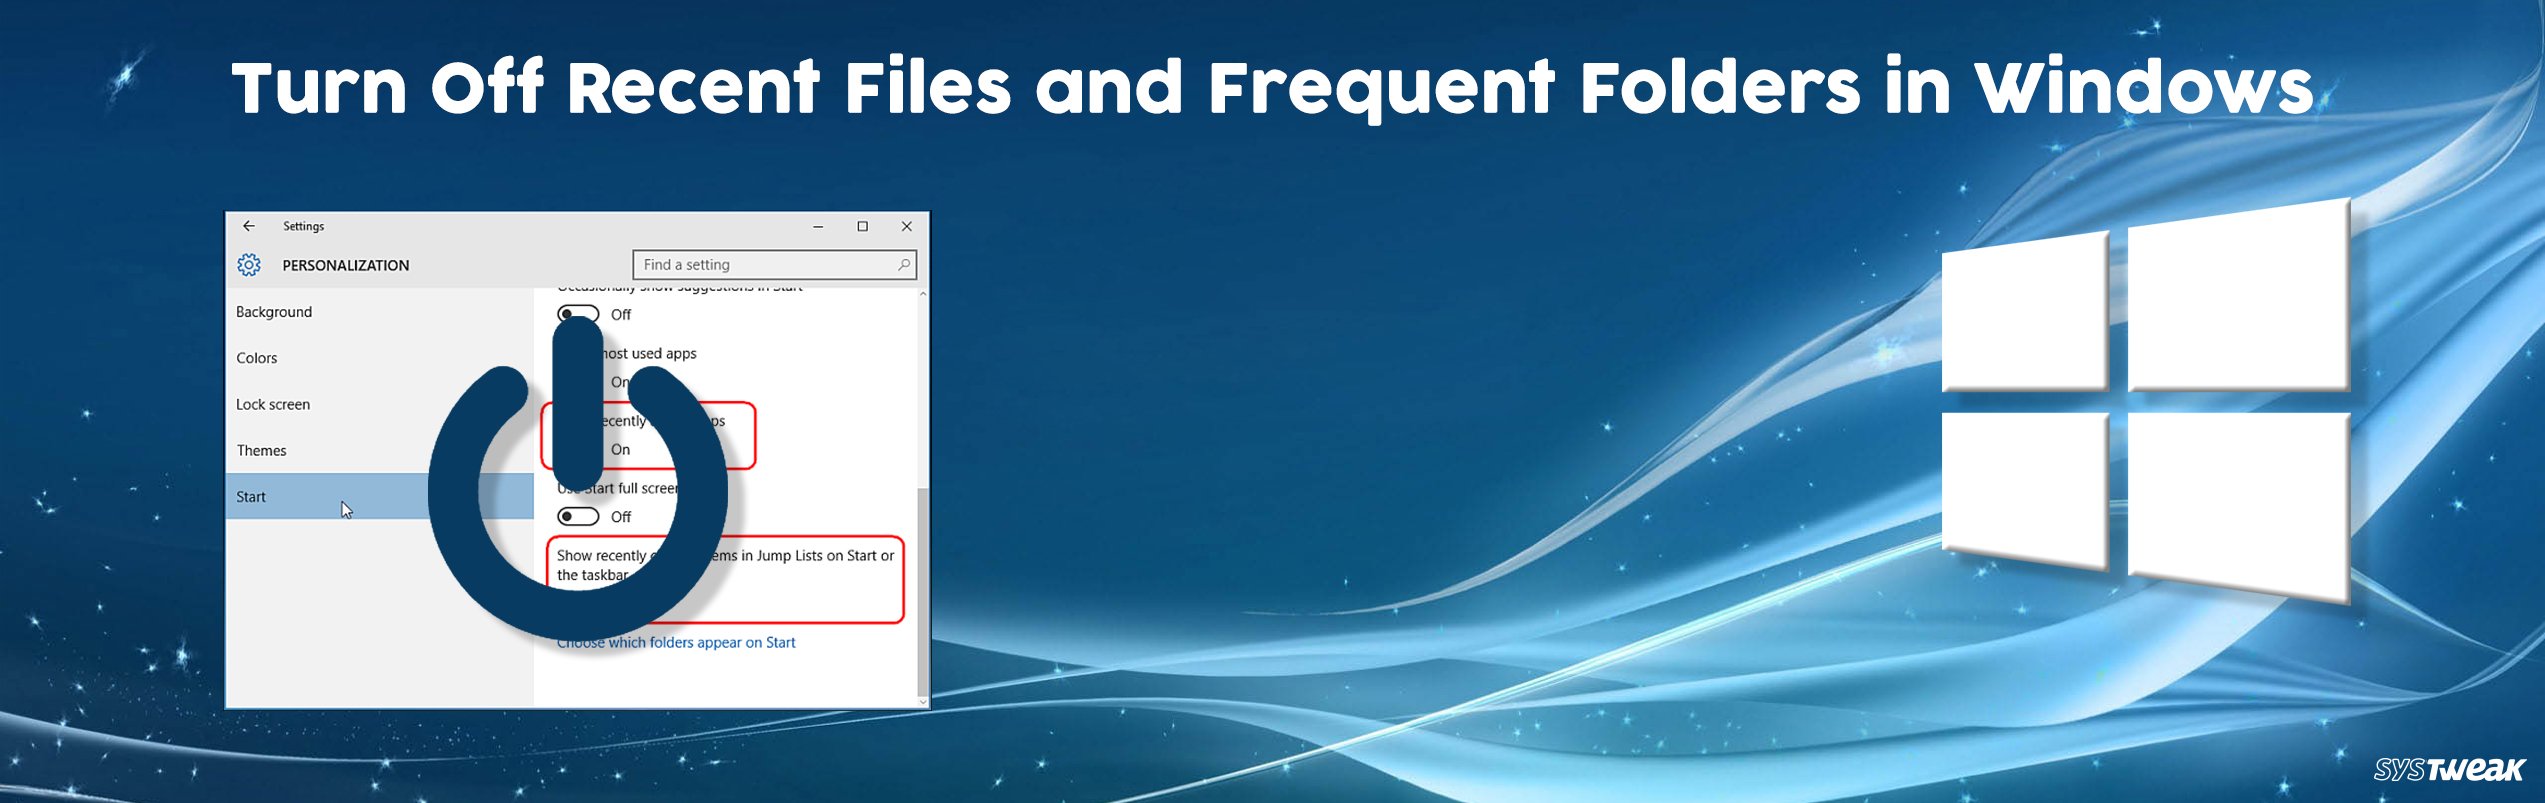 How to Turn Off Recent Files and Frequent Folders in Windows 10